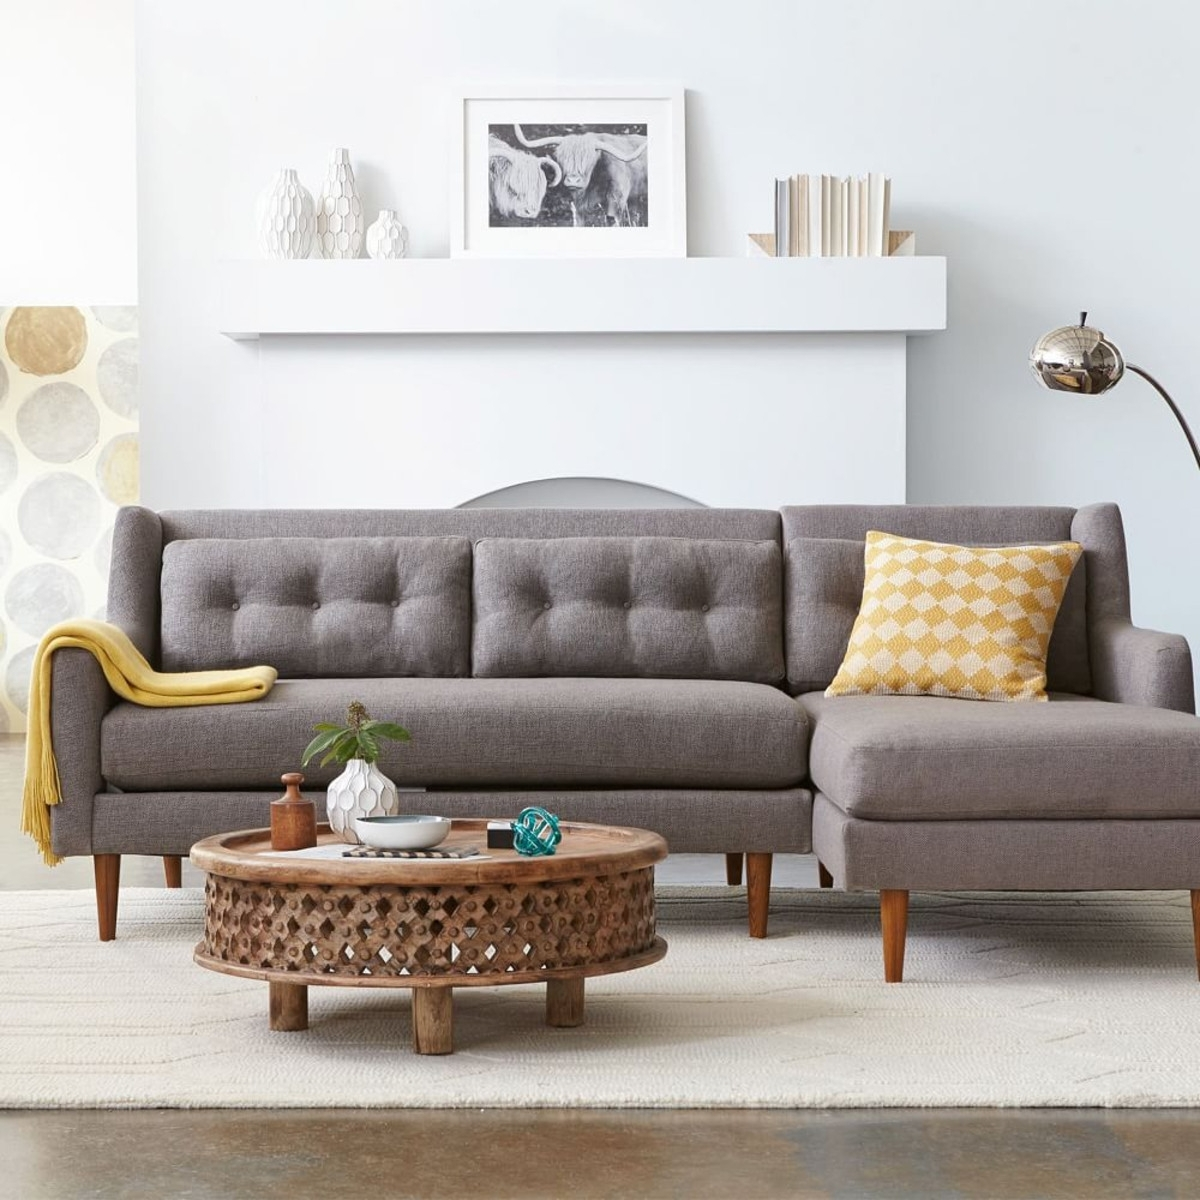 West Elm Sectional Sofa in West Elm Sectional Sofas